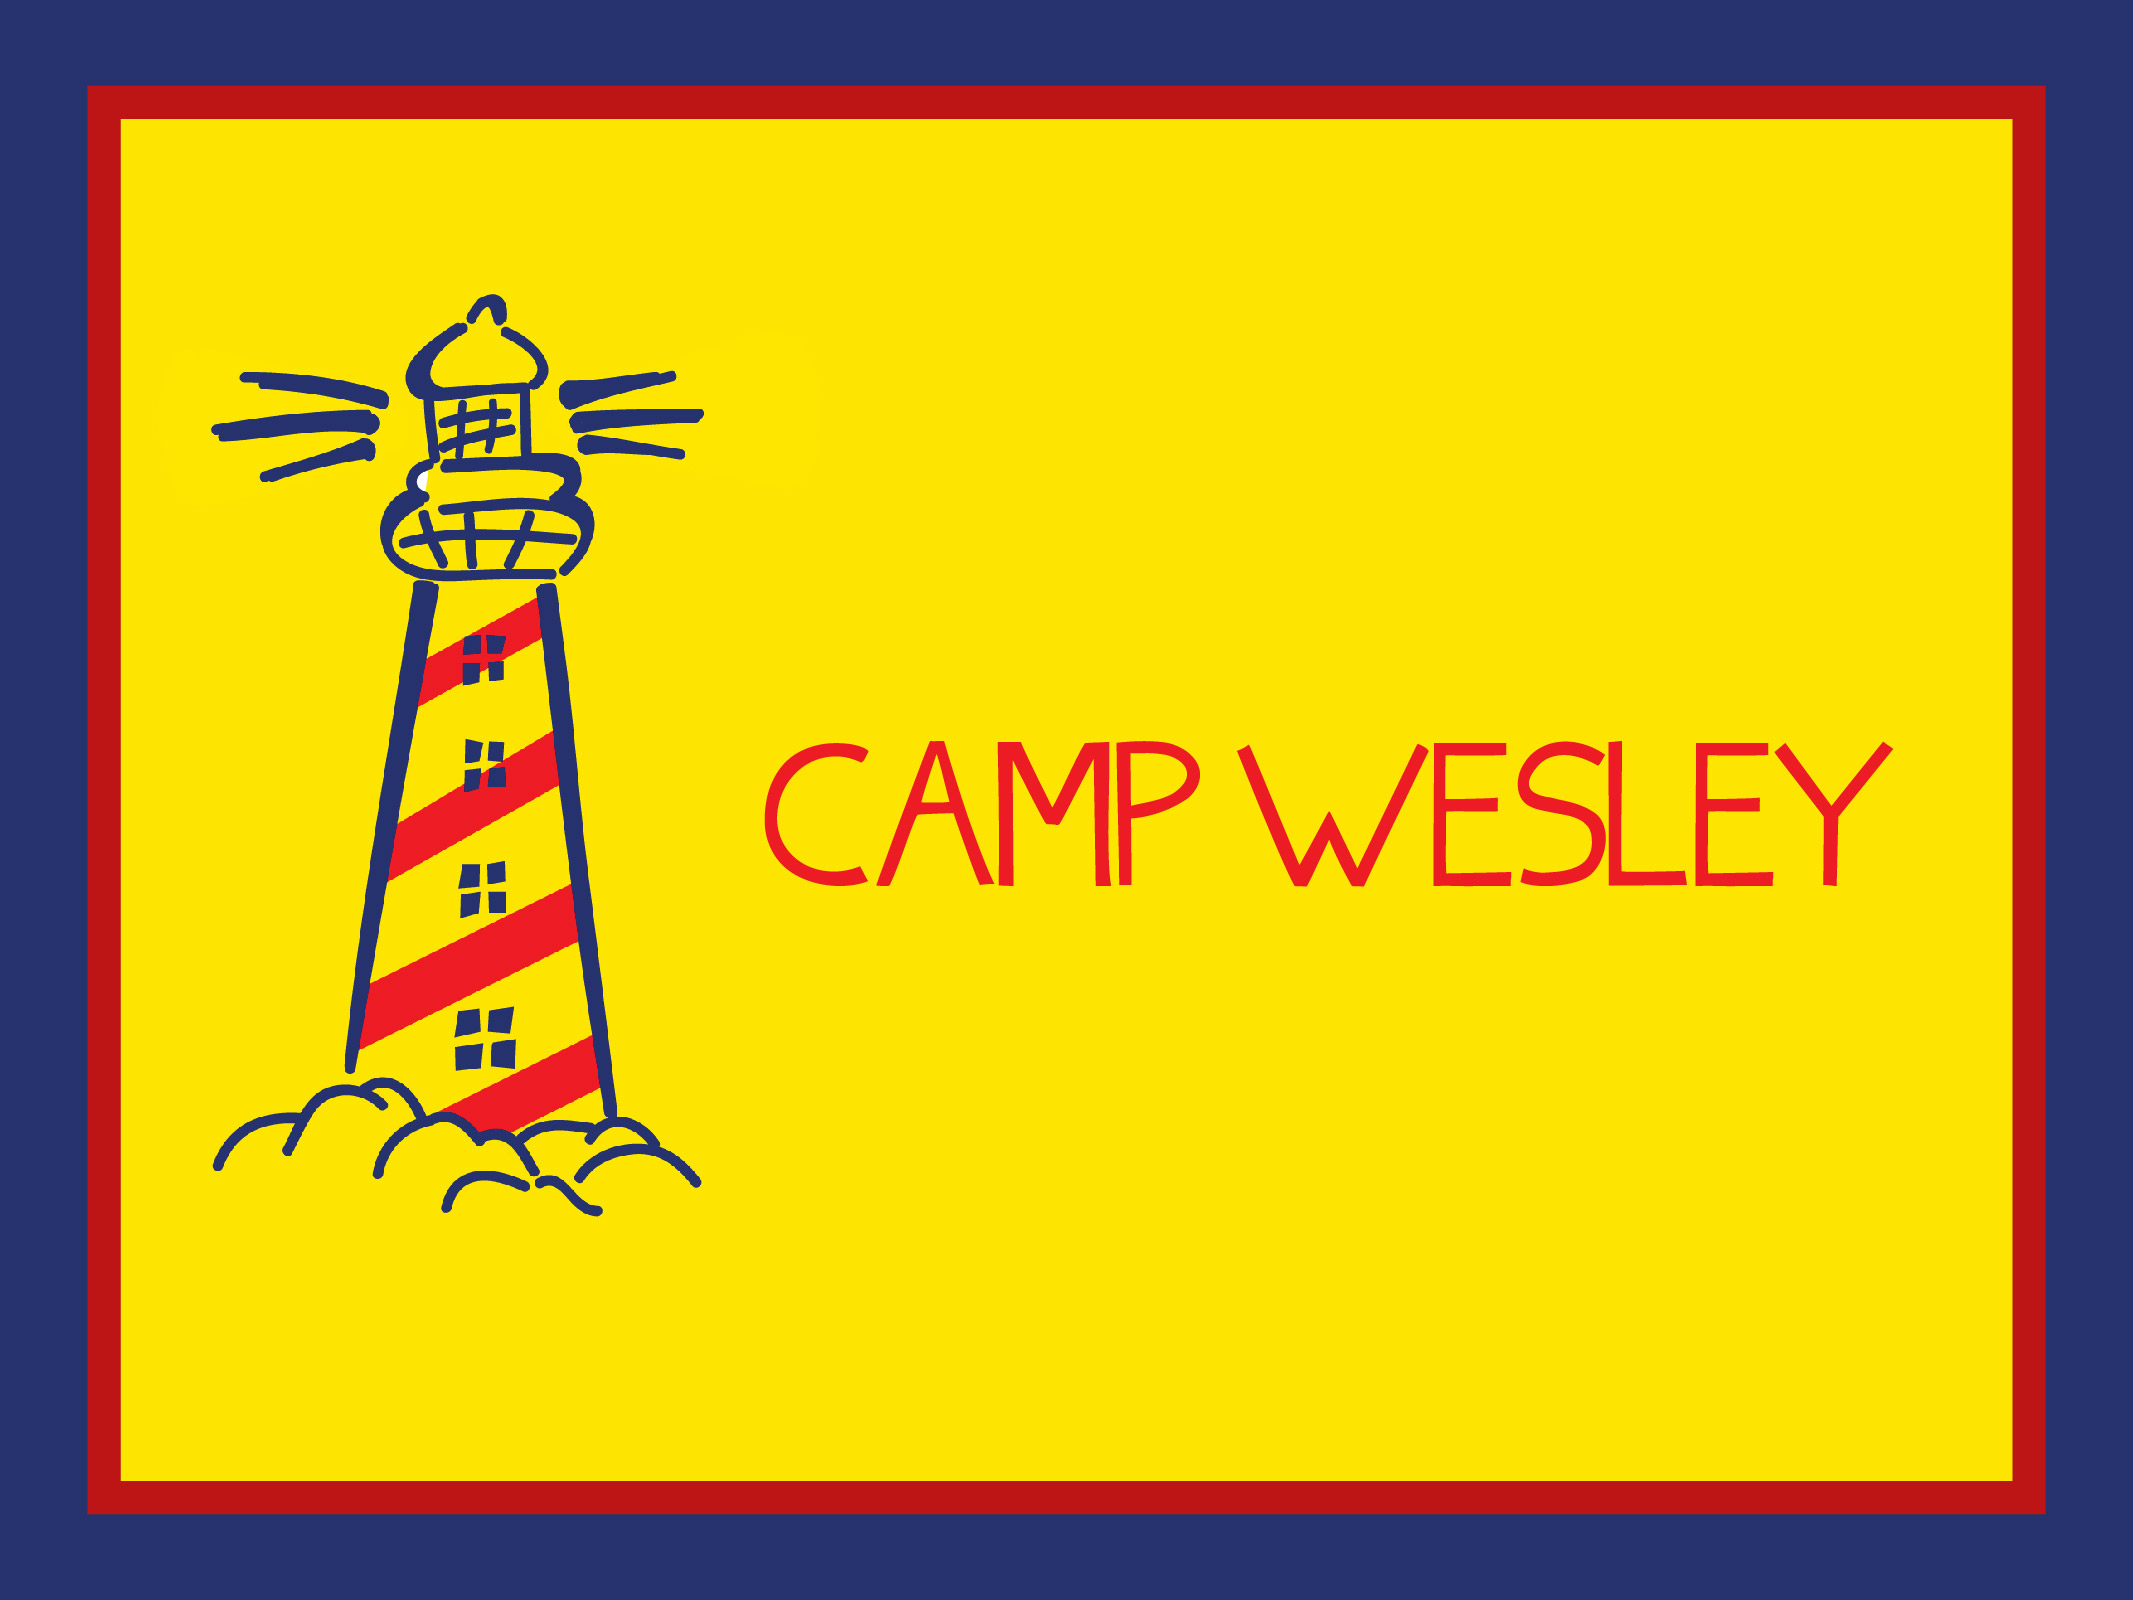 Camp wesley logo